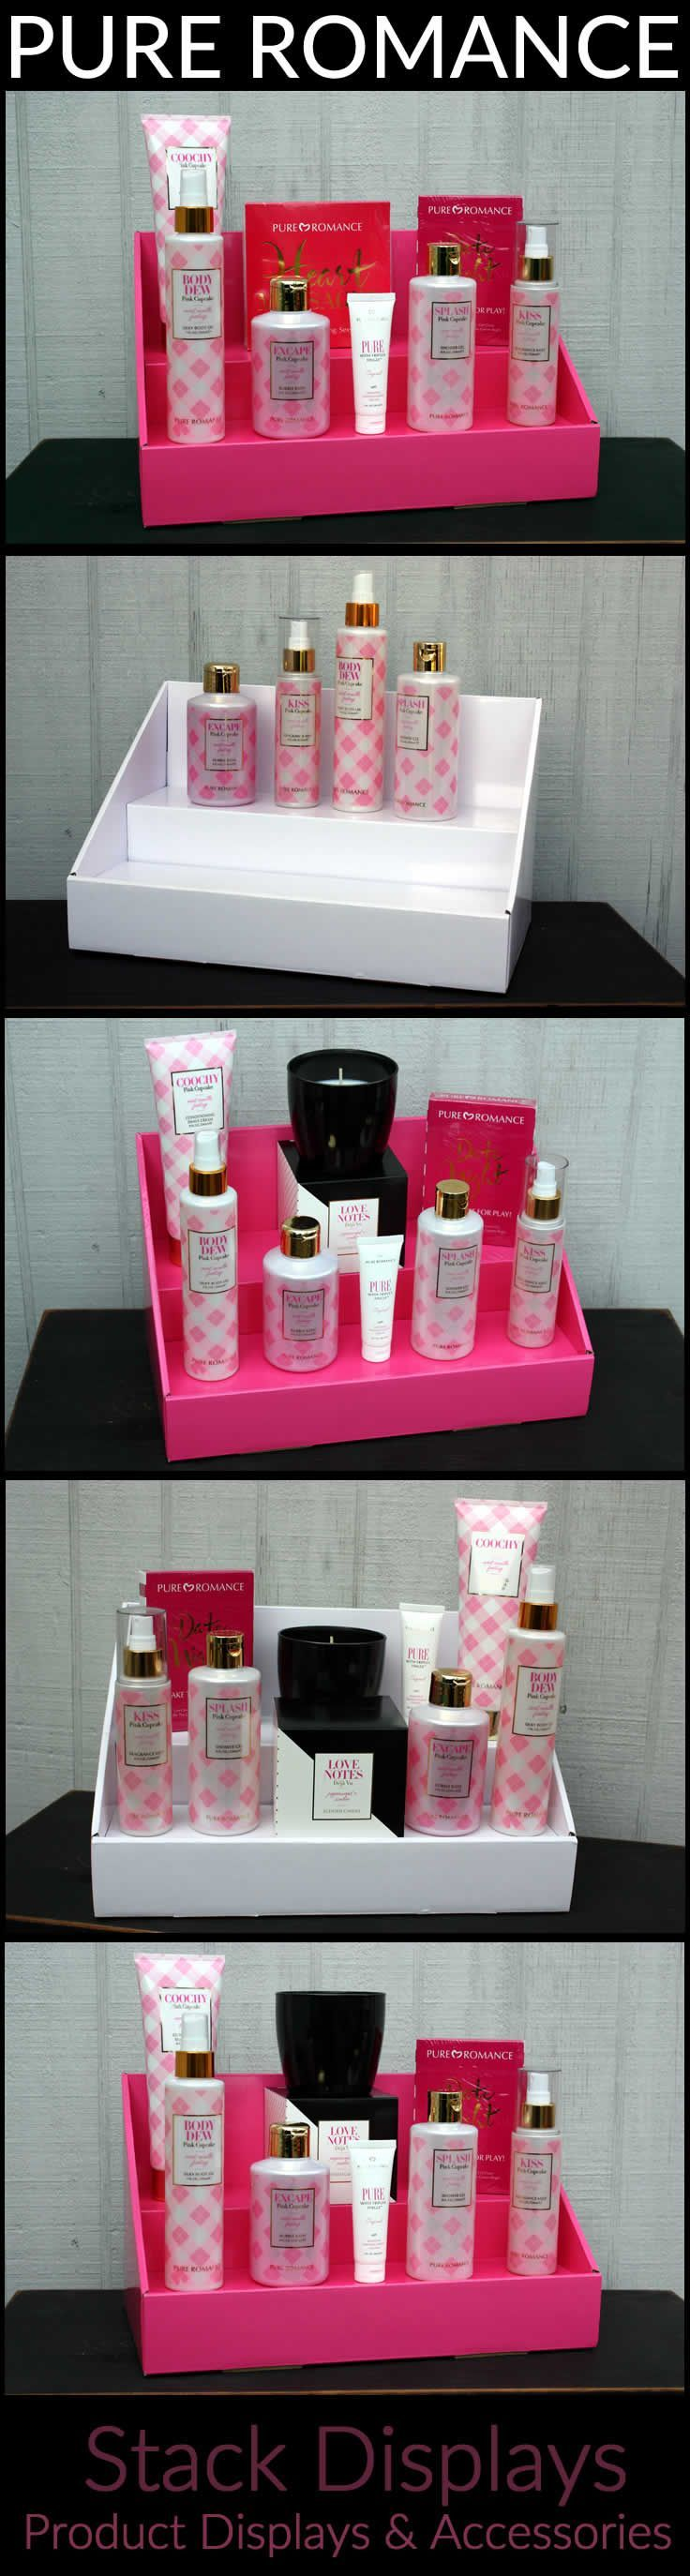 Pure Romance Vendor Display Ideas using two tiered cardboard displays from Stack Displays.